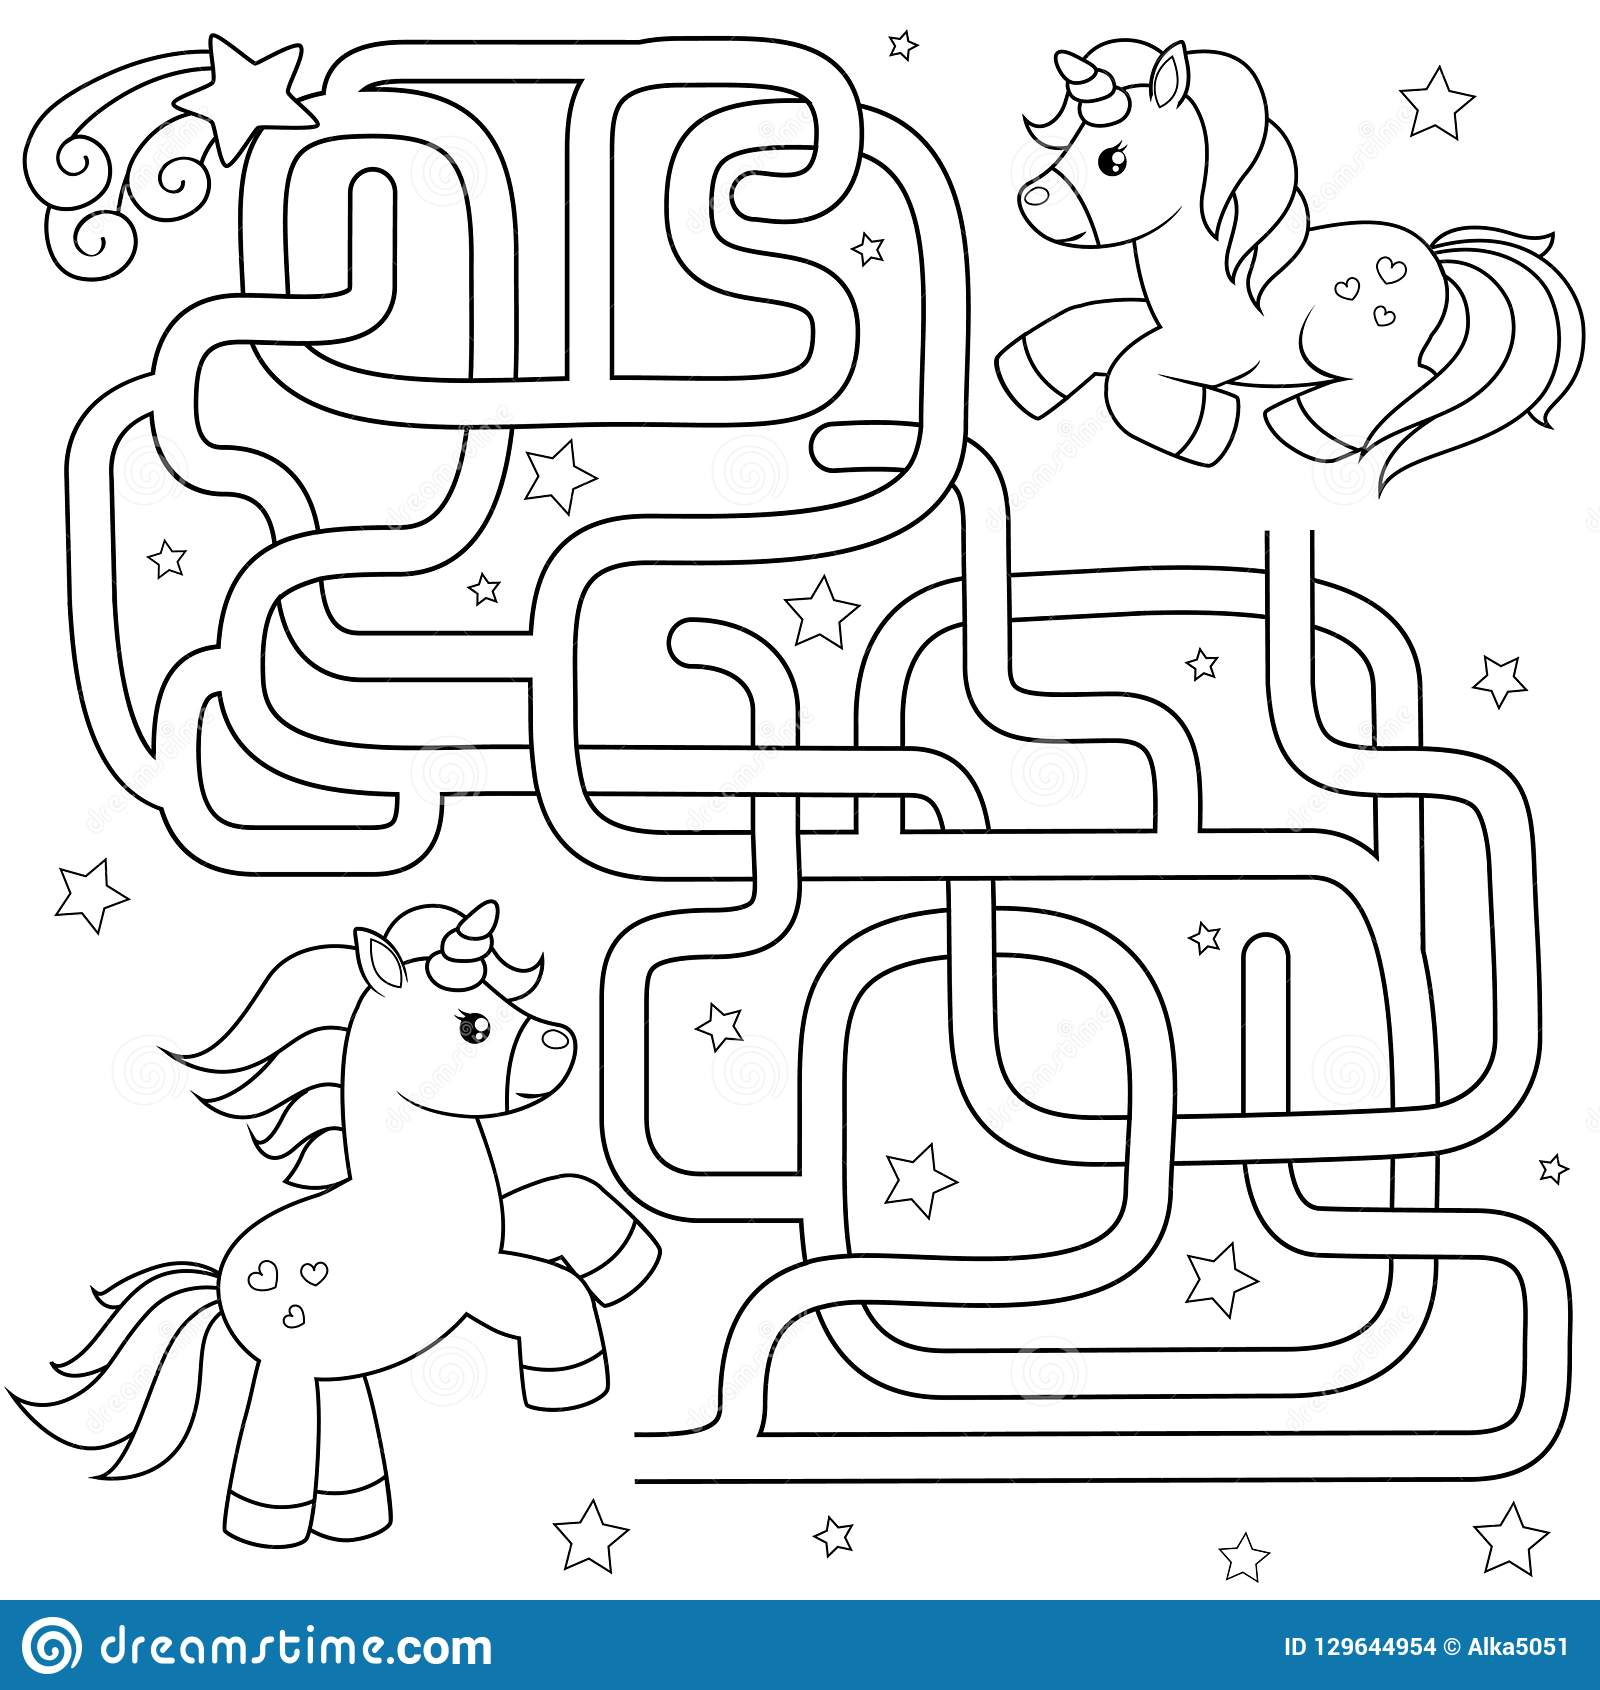 Help Unicorn Find Path To Friend Labyrinth Maze Game For